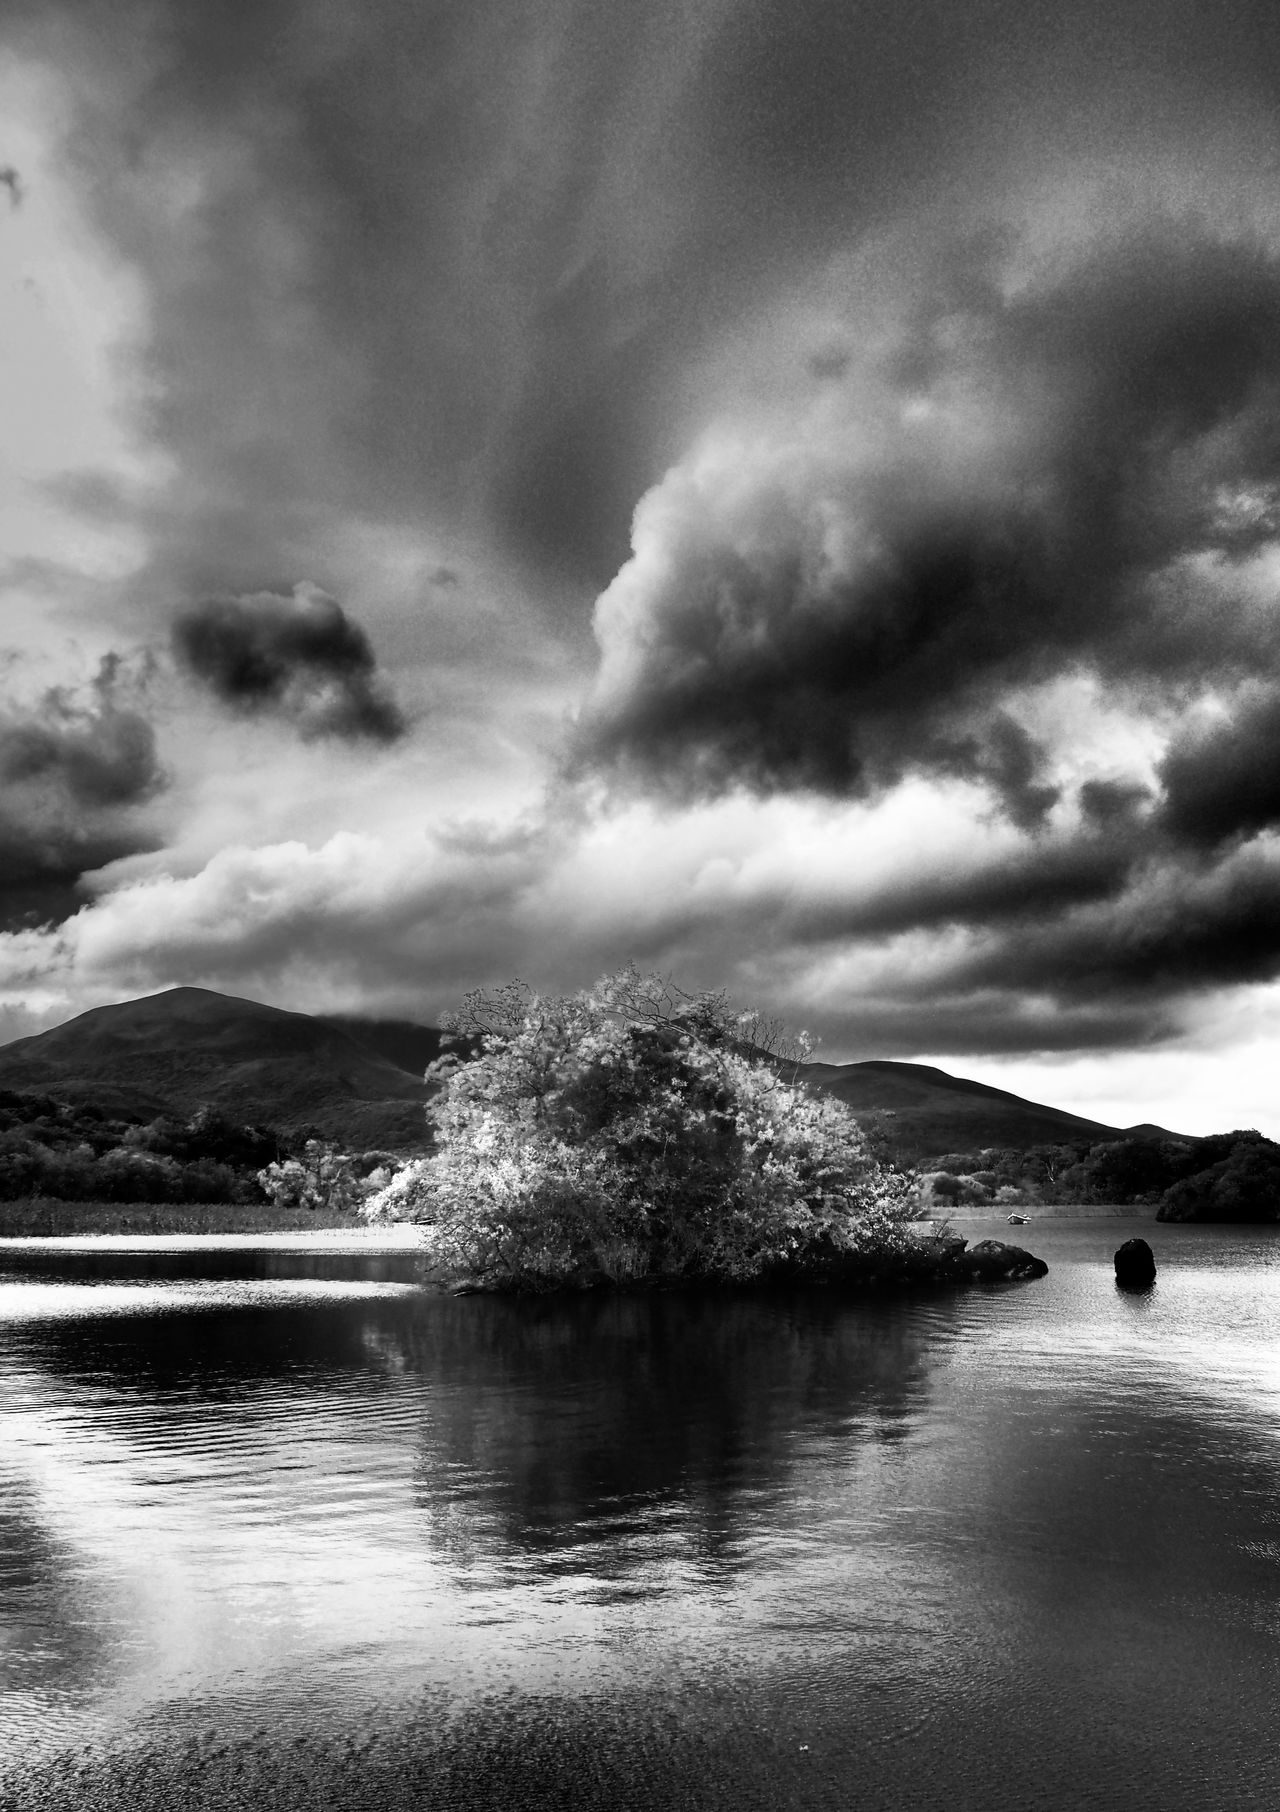 Lough Leane b+w @ Ross Castle Killarney  Ireland Water Cloud - Sky Reflection Nature Beauty In Nature Outdoors Scenics Landscape Landscapes Tree Reflection Lake Lake View Lough Leane Lough EyeEm Nature Lover Autumn Travel Destinations Black And White Black & White